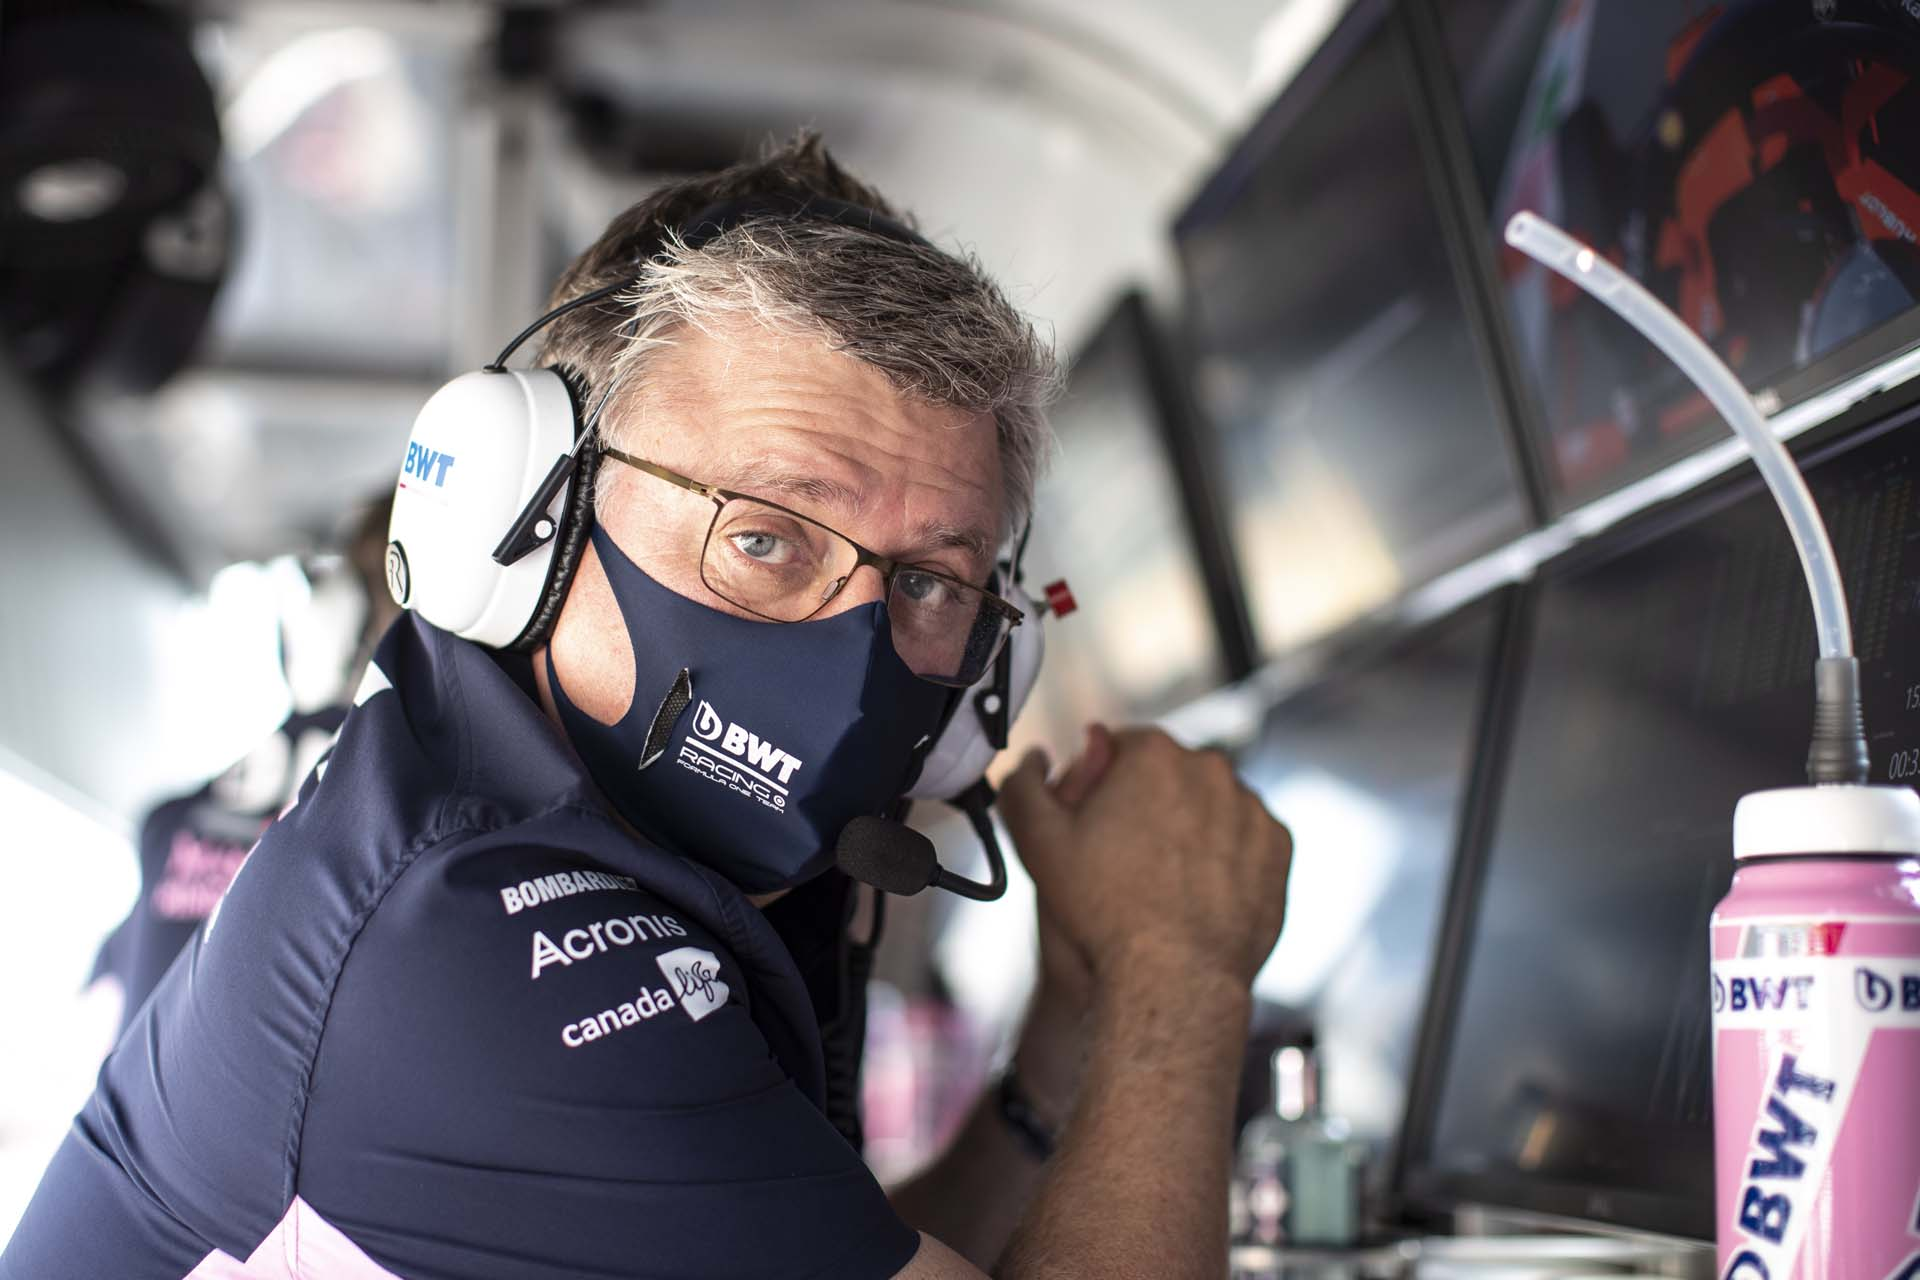 Otmar Szafnauer, Team Principal and CEO, Racing Point, on the pit wall